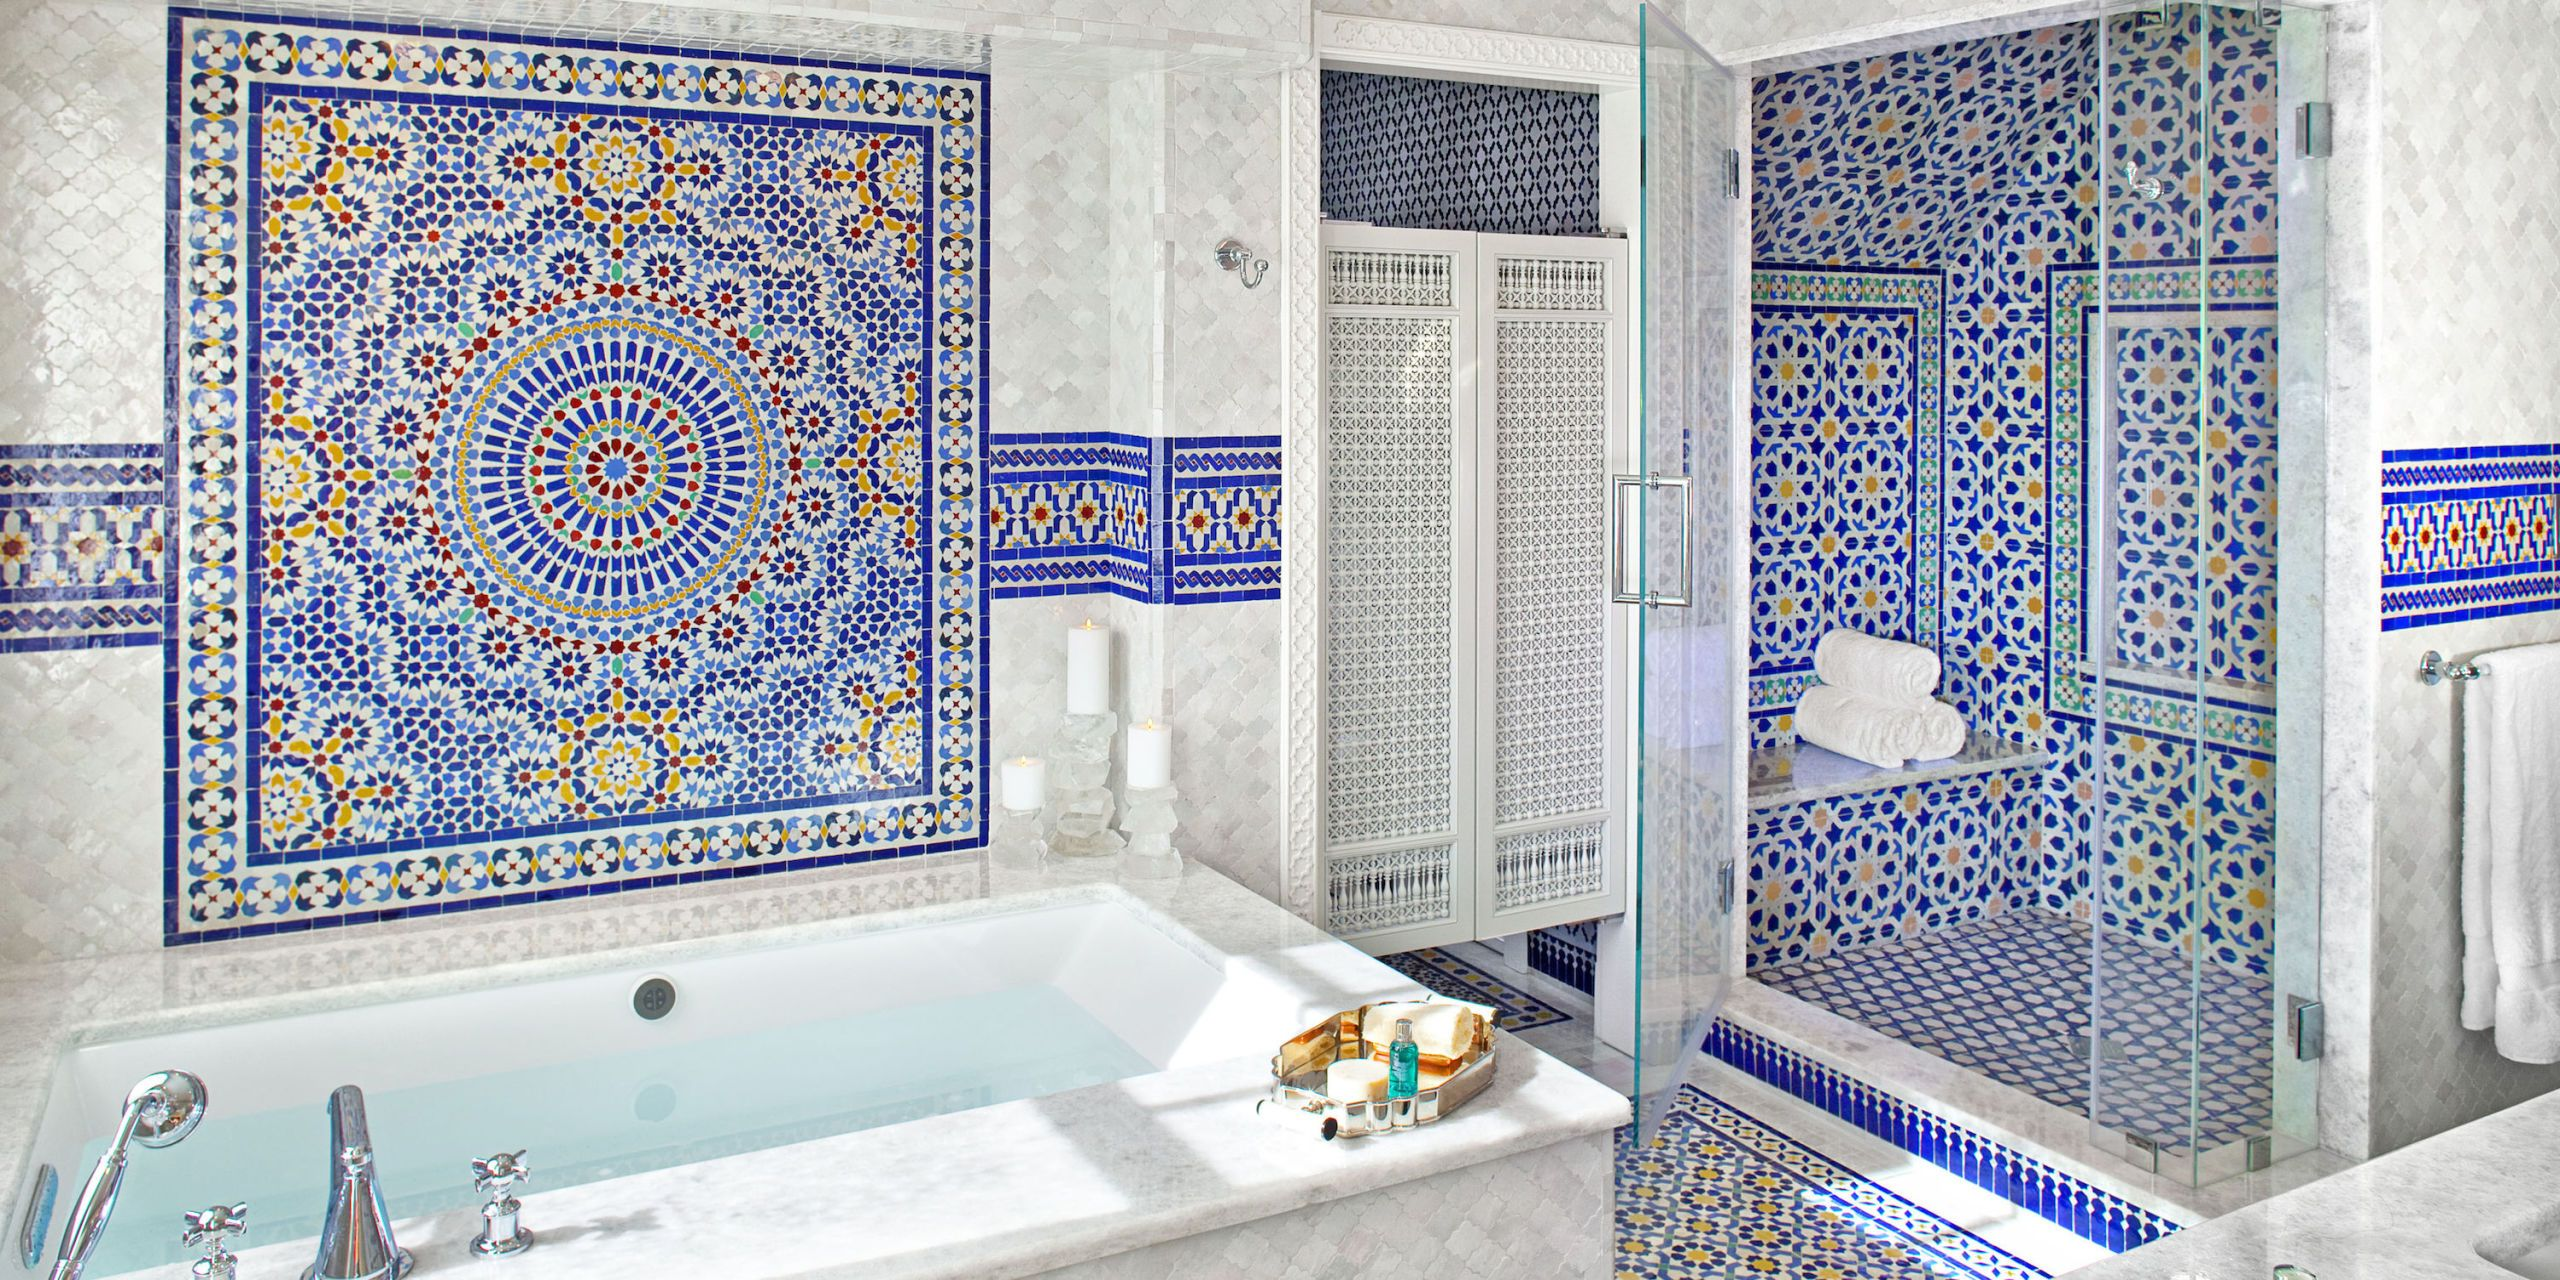 Nice 12X12 Ceramic Tiles Tiny 2 Inch Hexagon Floor Tile Shaped 2 X4 Ceiling Tiles 24 X 48 Ceiling Tiles Young 24X24 Tin Ceiling Tiles Blue4 X 4 Ceramic Wall Tile 48 Bathroom Tile Design Ideas   Tile Backsplash And Floor Designs ..